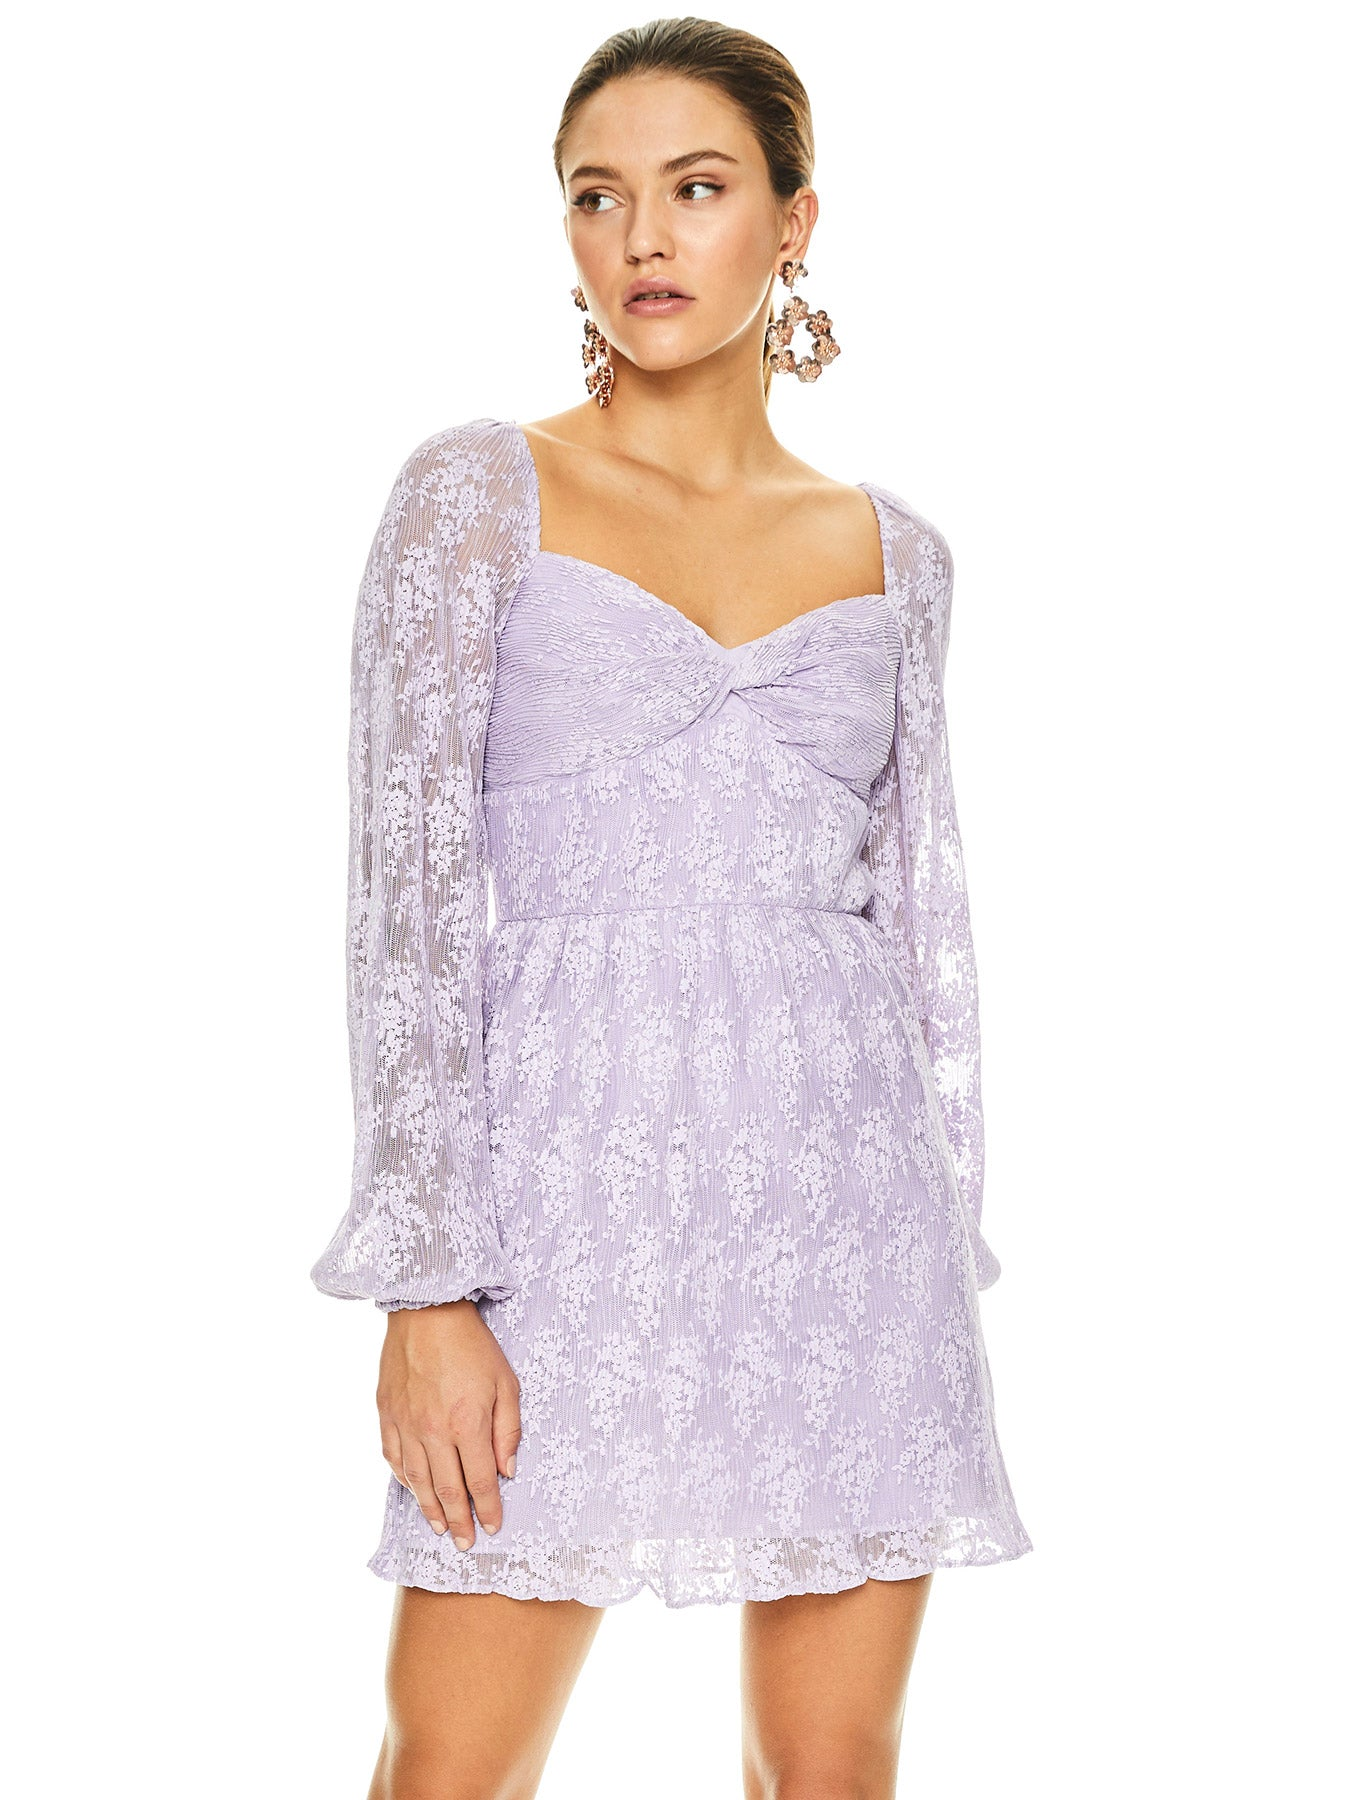 LILAC DREAMS MINI DRESS